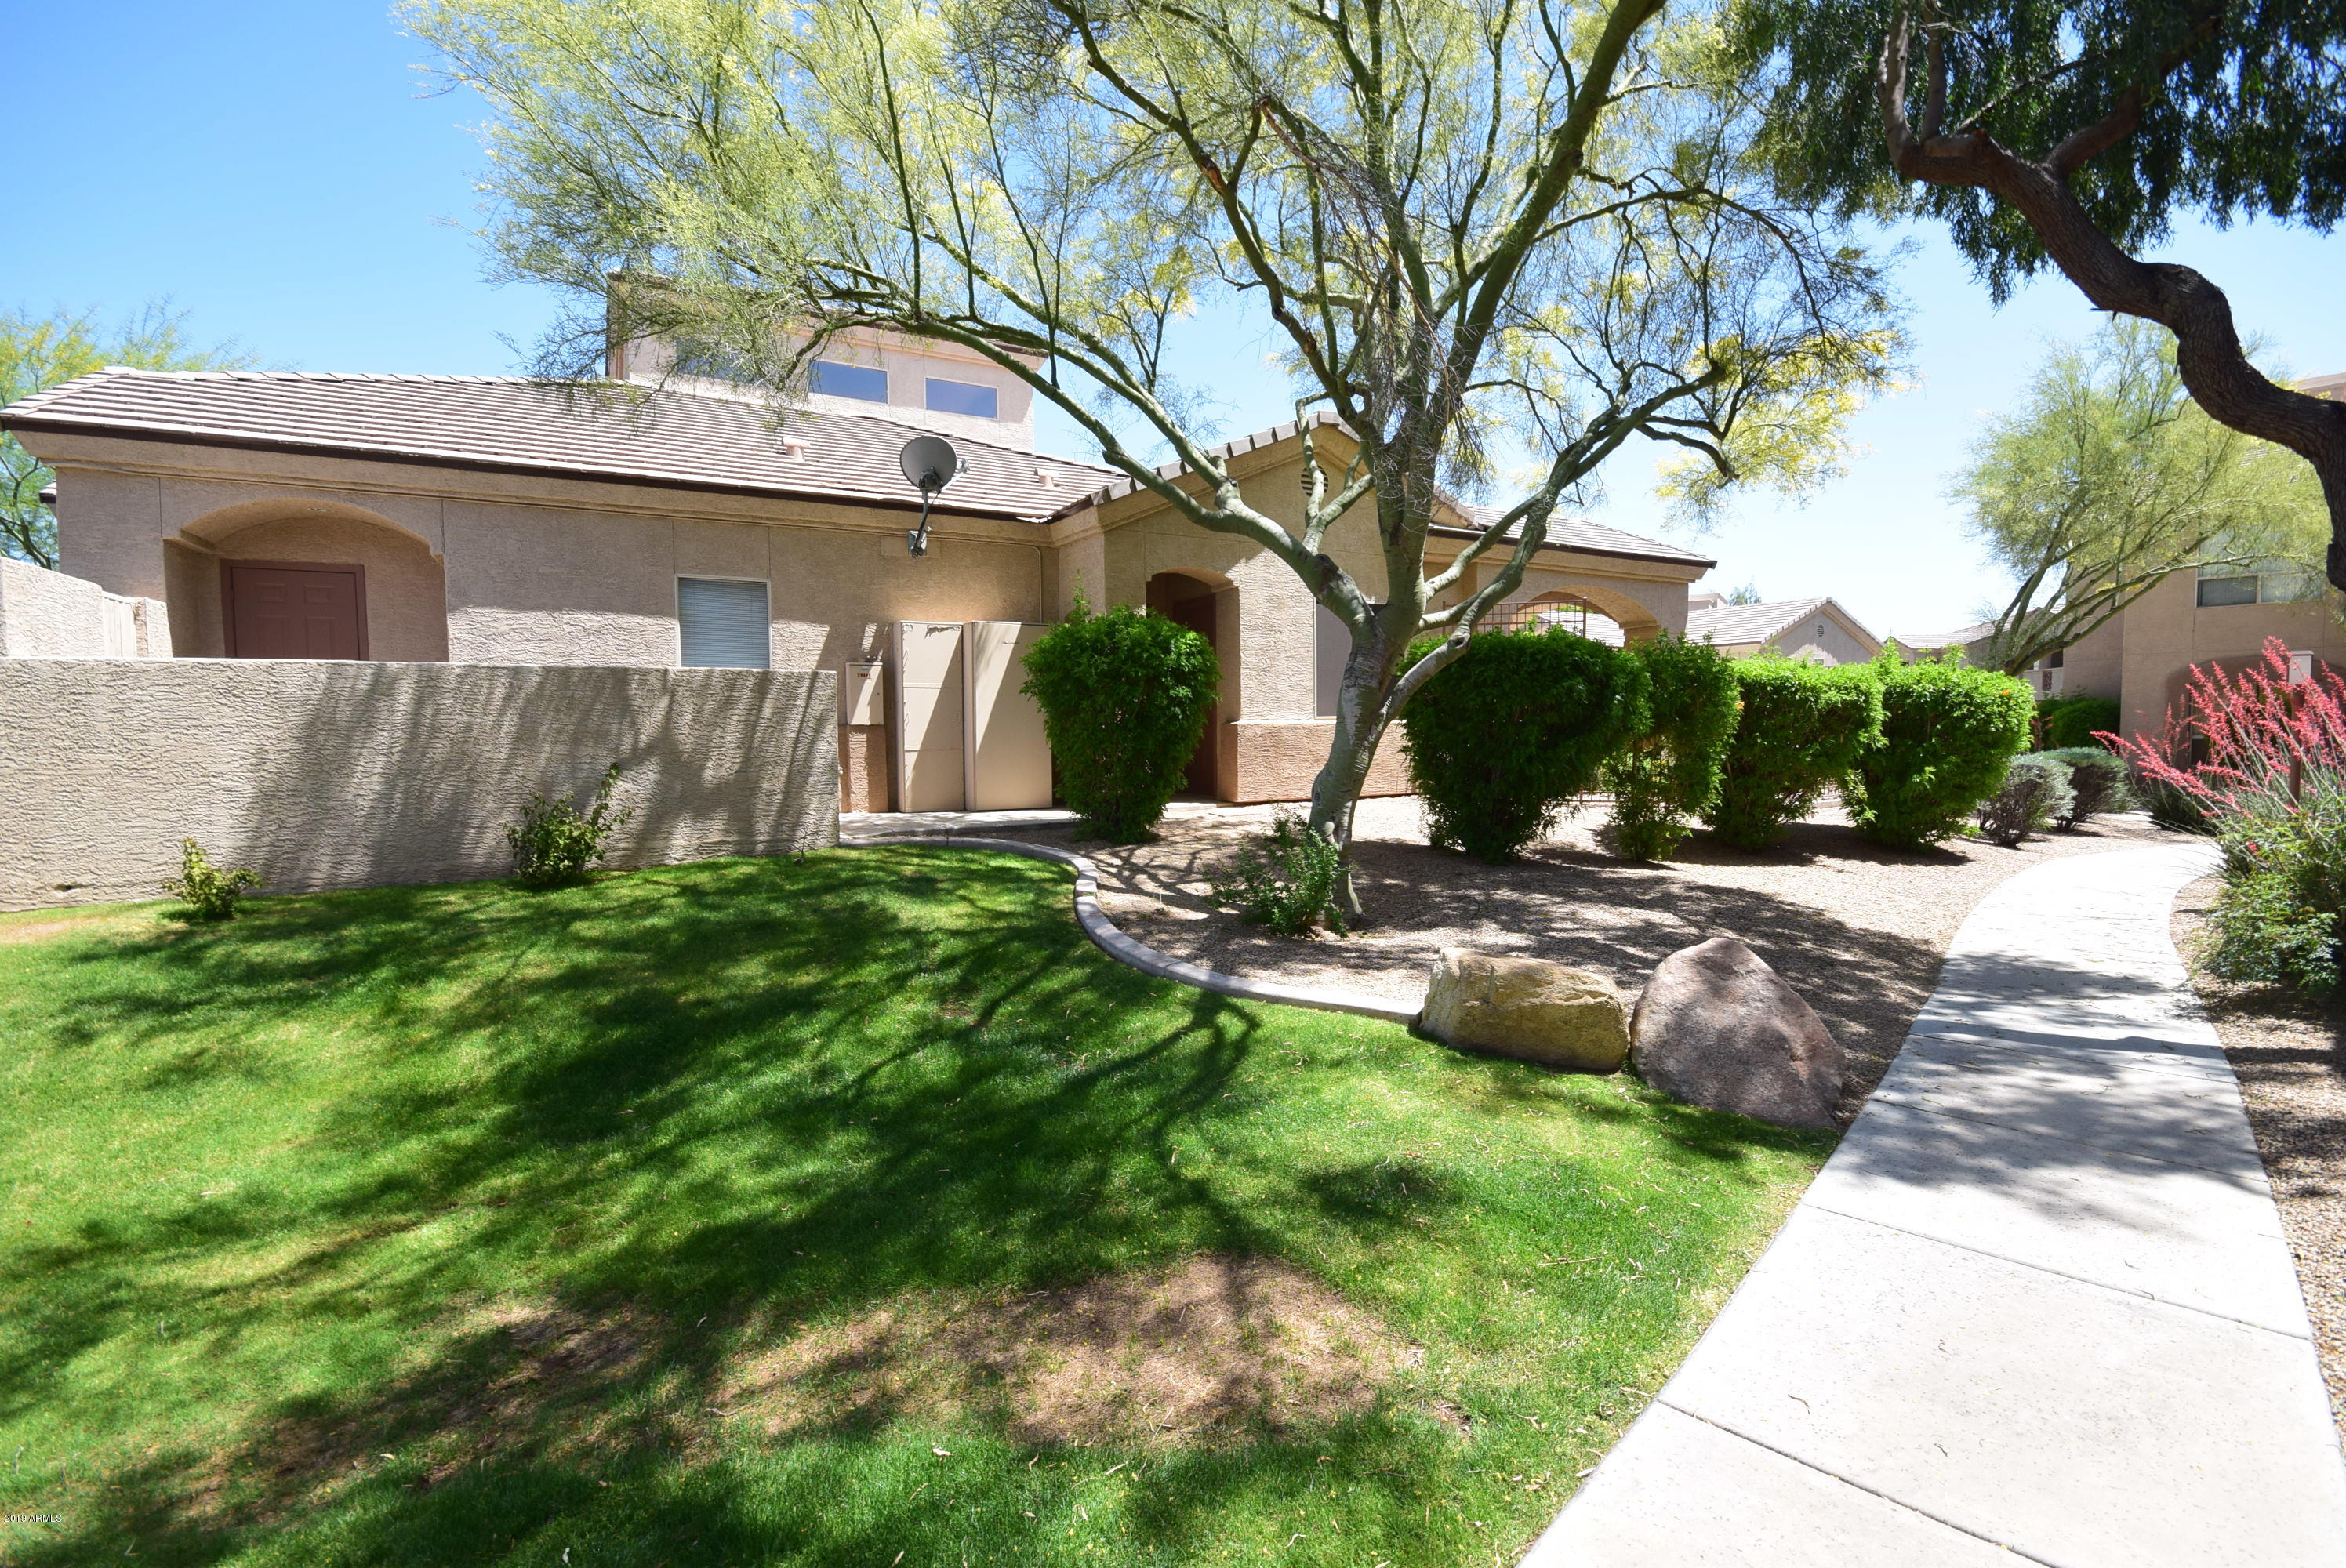 MLS 5954517 29606 N TATUM Boulevard Unit 203, Cave Creek, AZ 85331 Cave Creek AZ Affordable